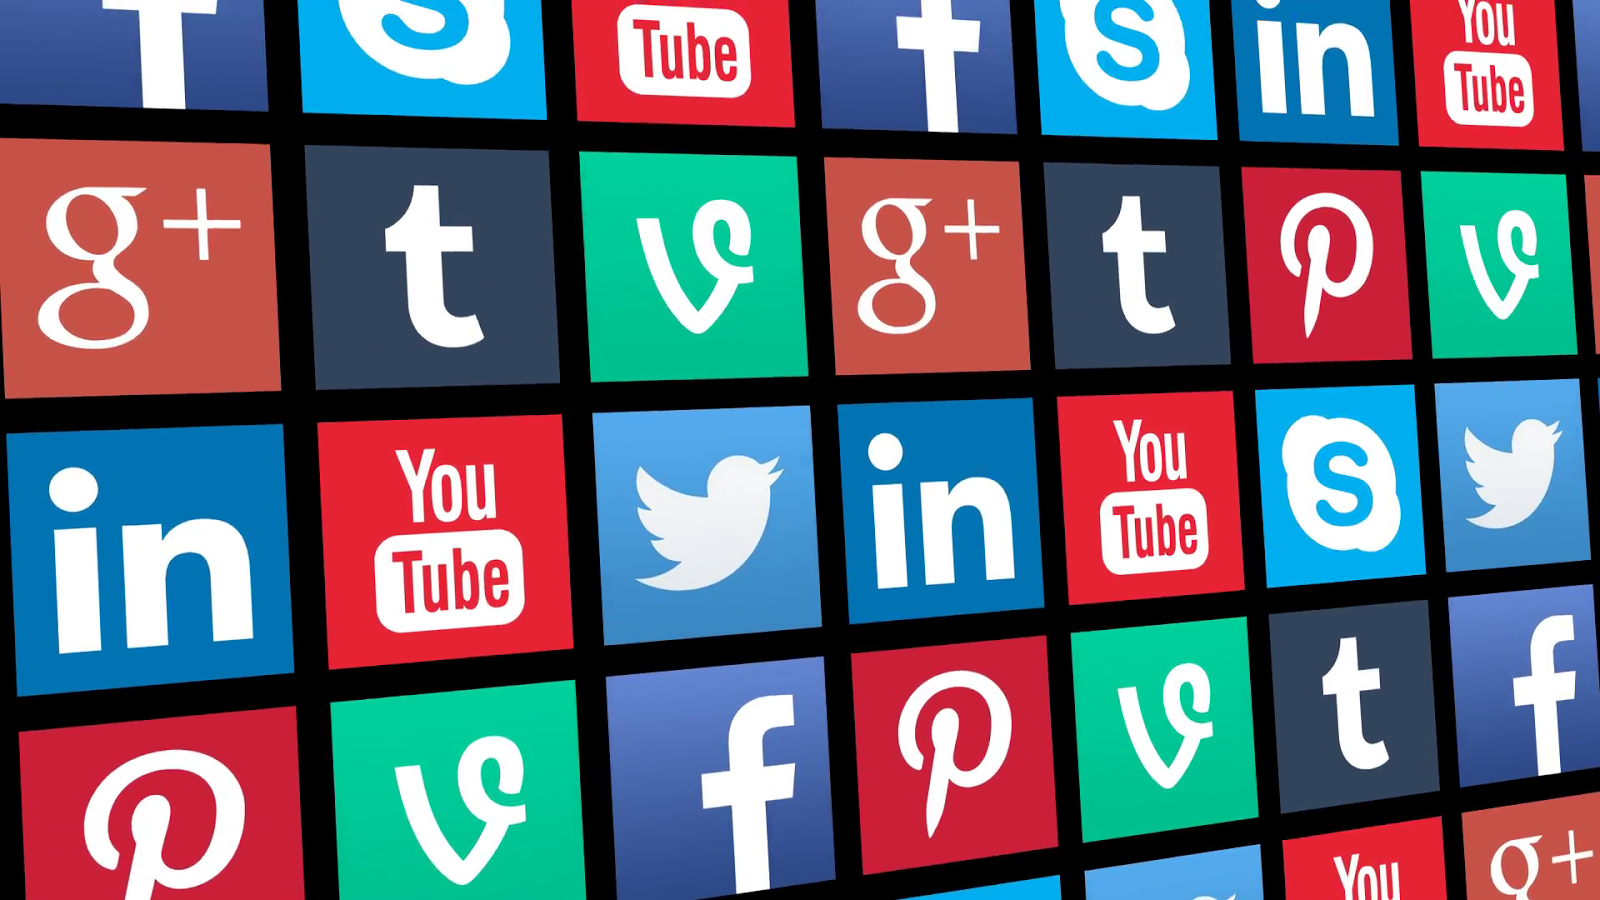 developing a social media strategy for channels